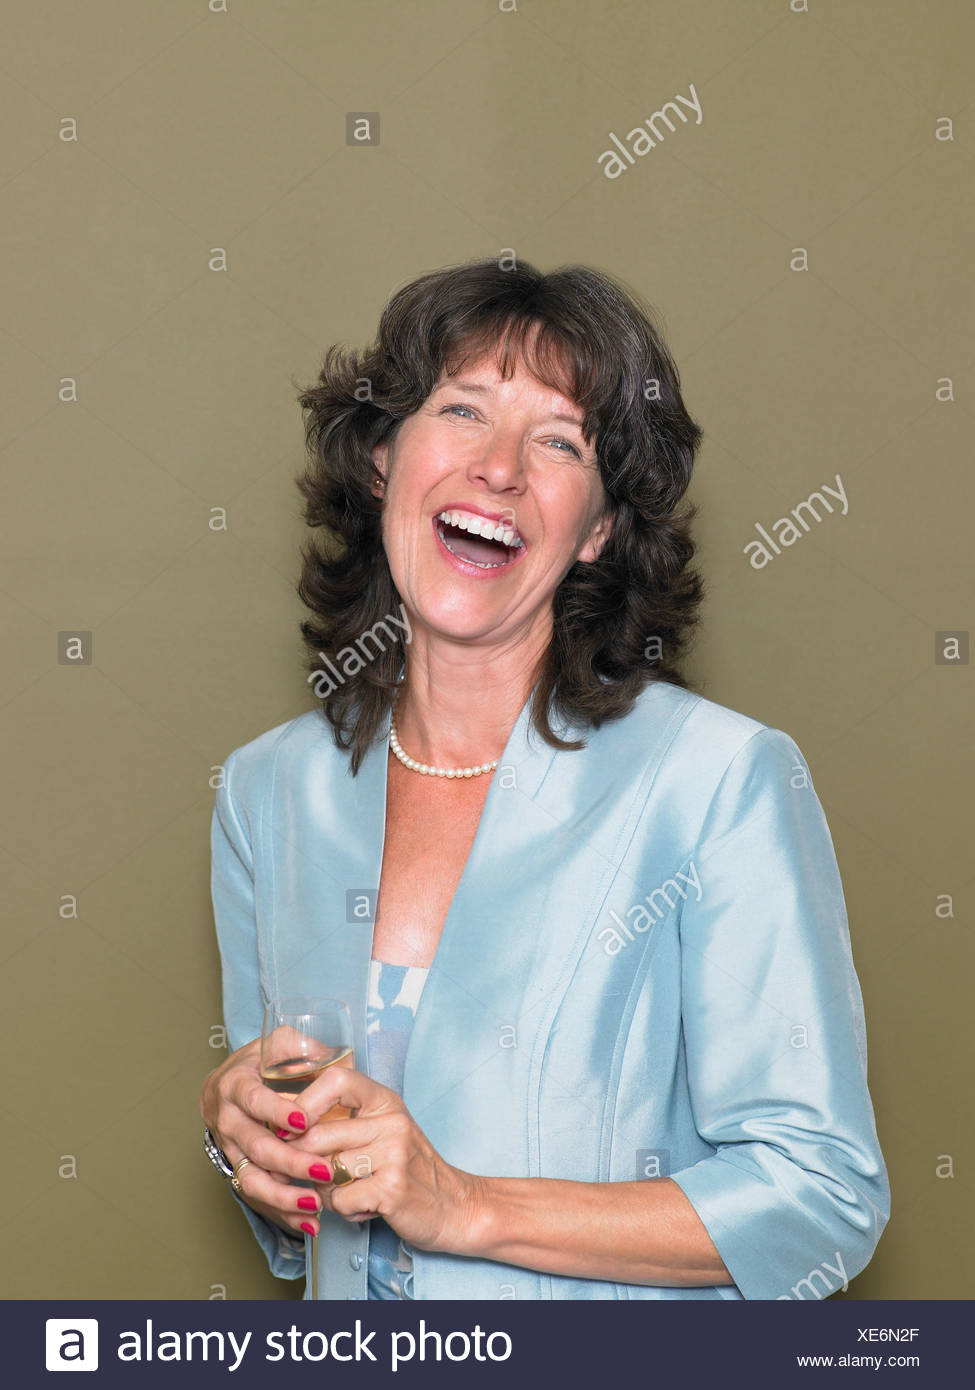 Portrait of a mature woman - Stock Image